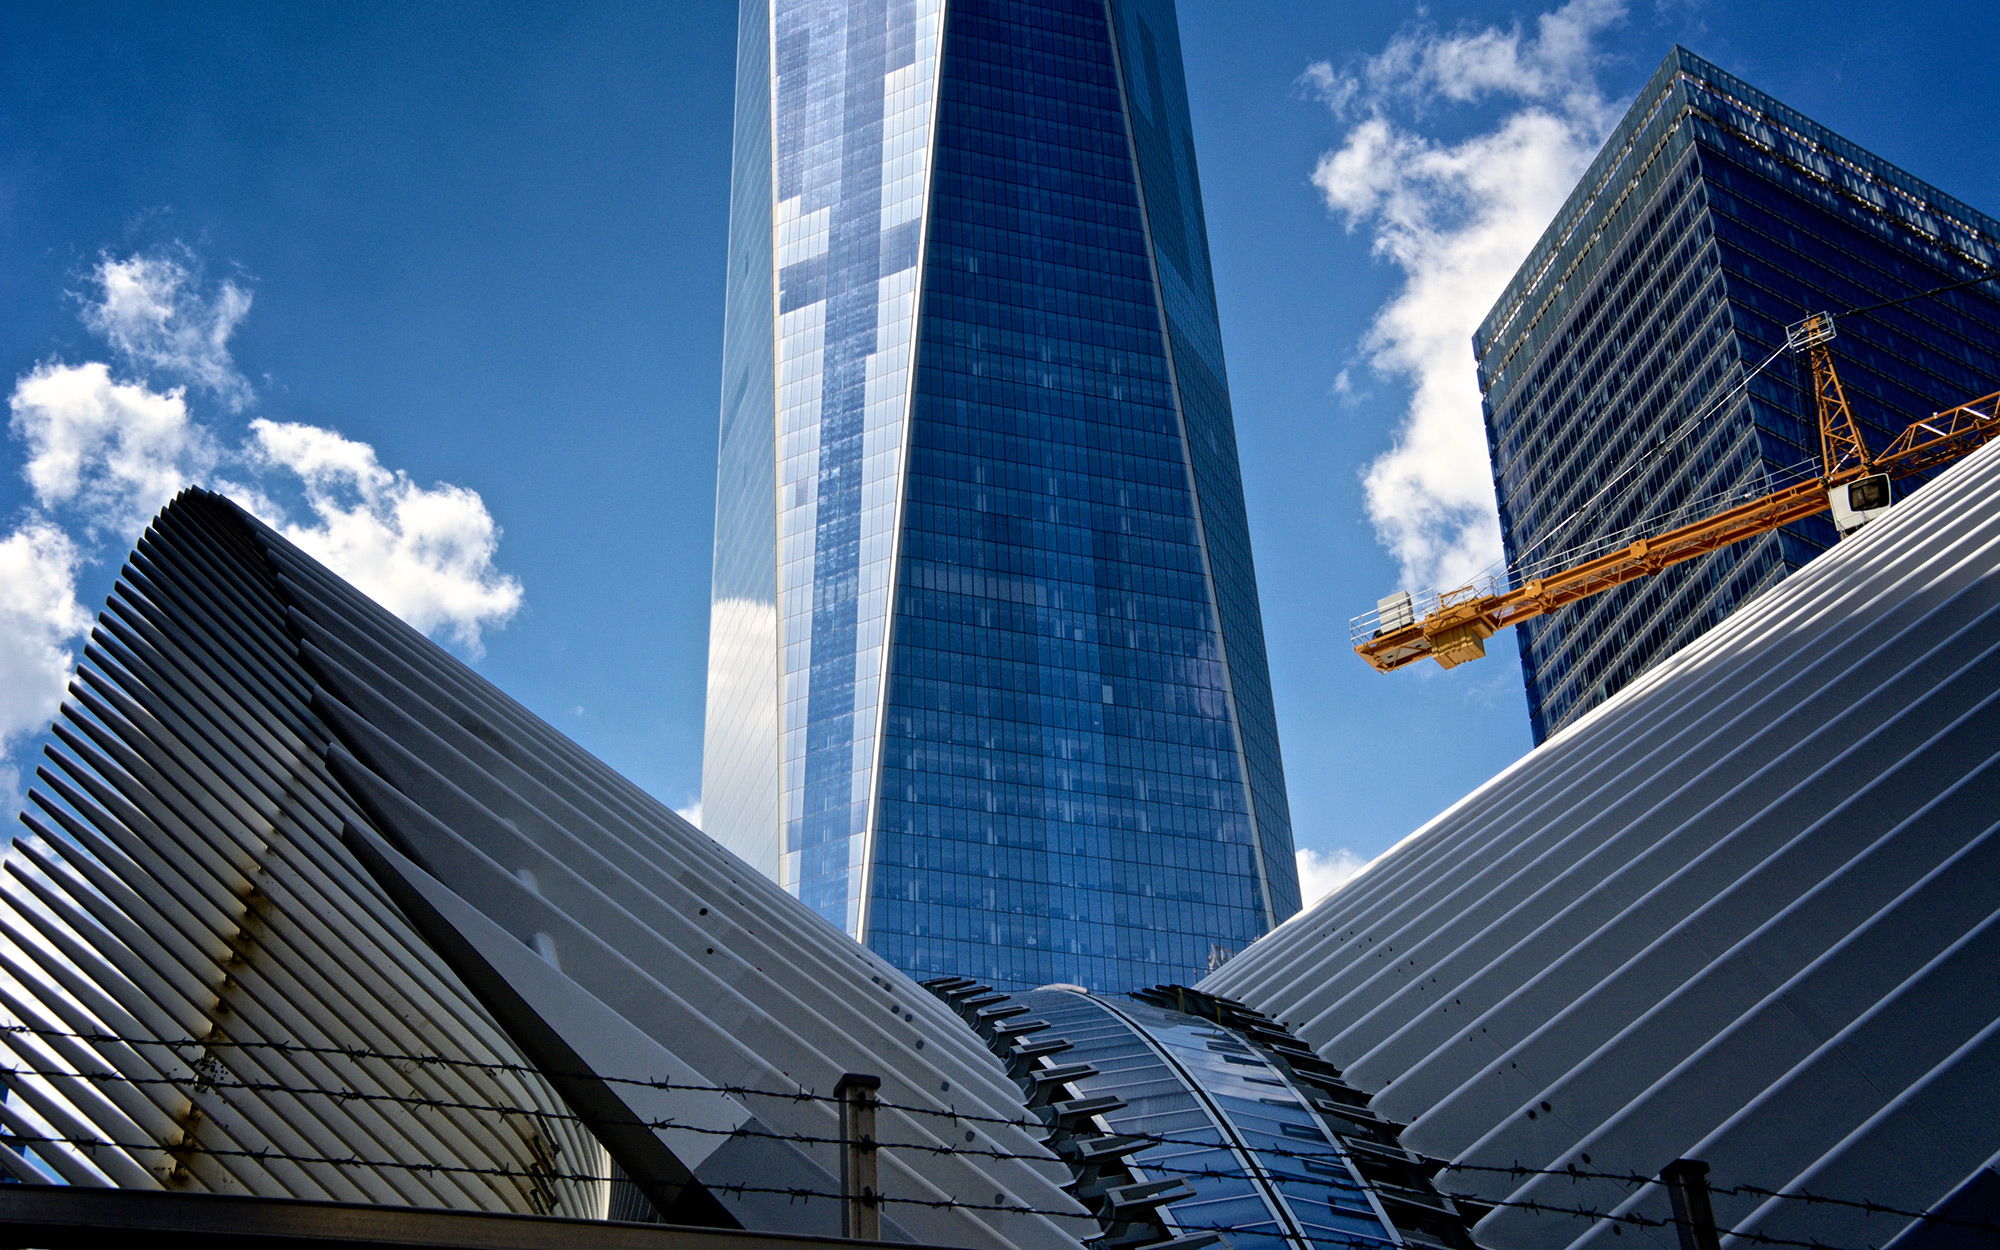 The Oculus, ONE World Trade Center Cityscape, Lower Manhattan, NYC